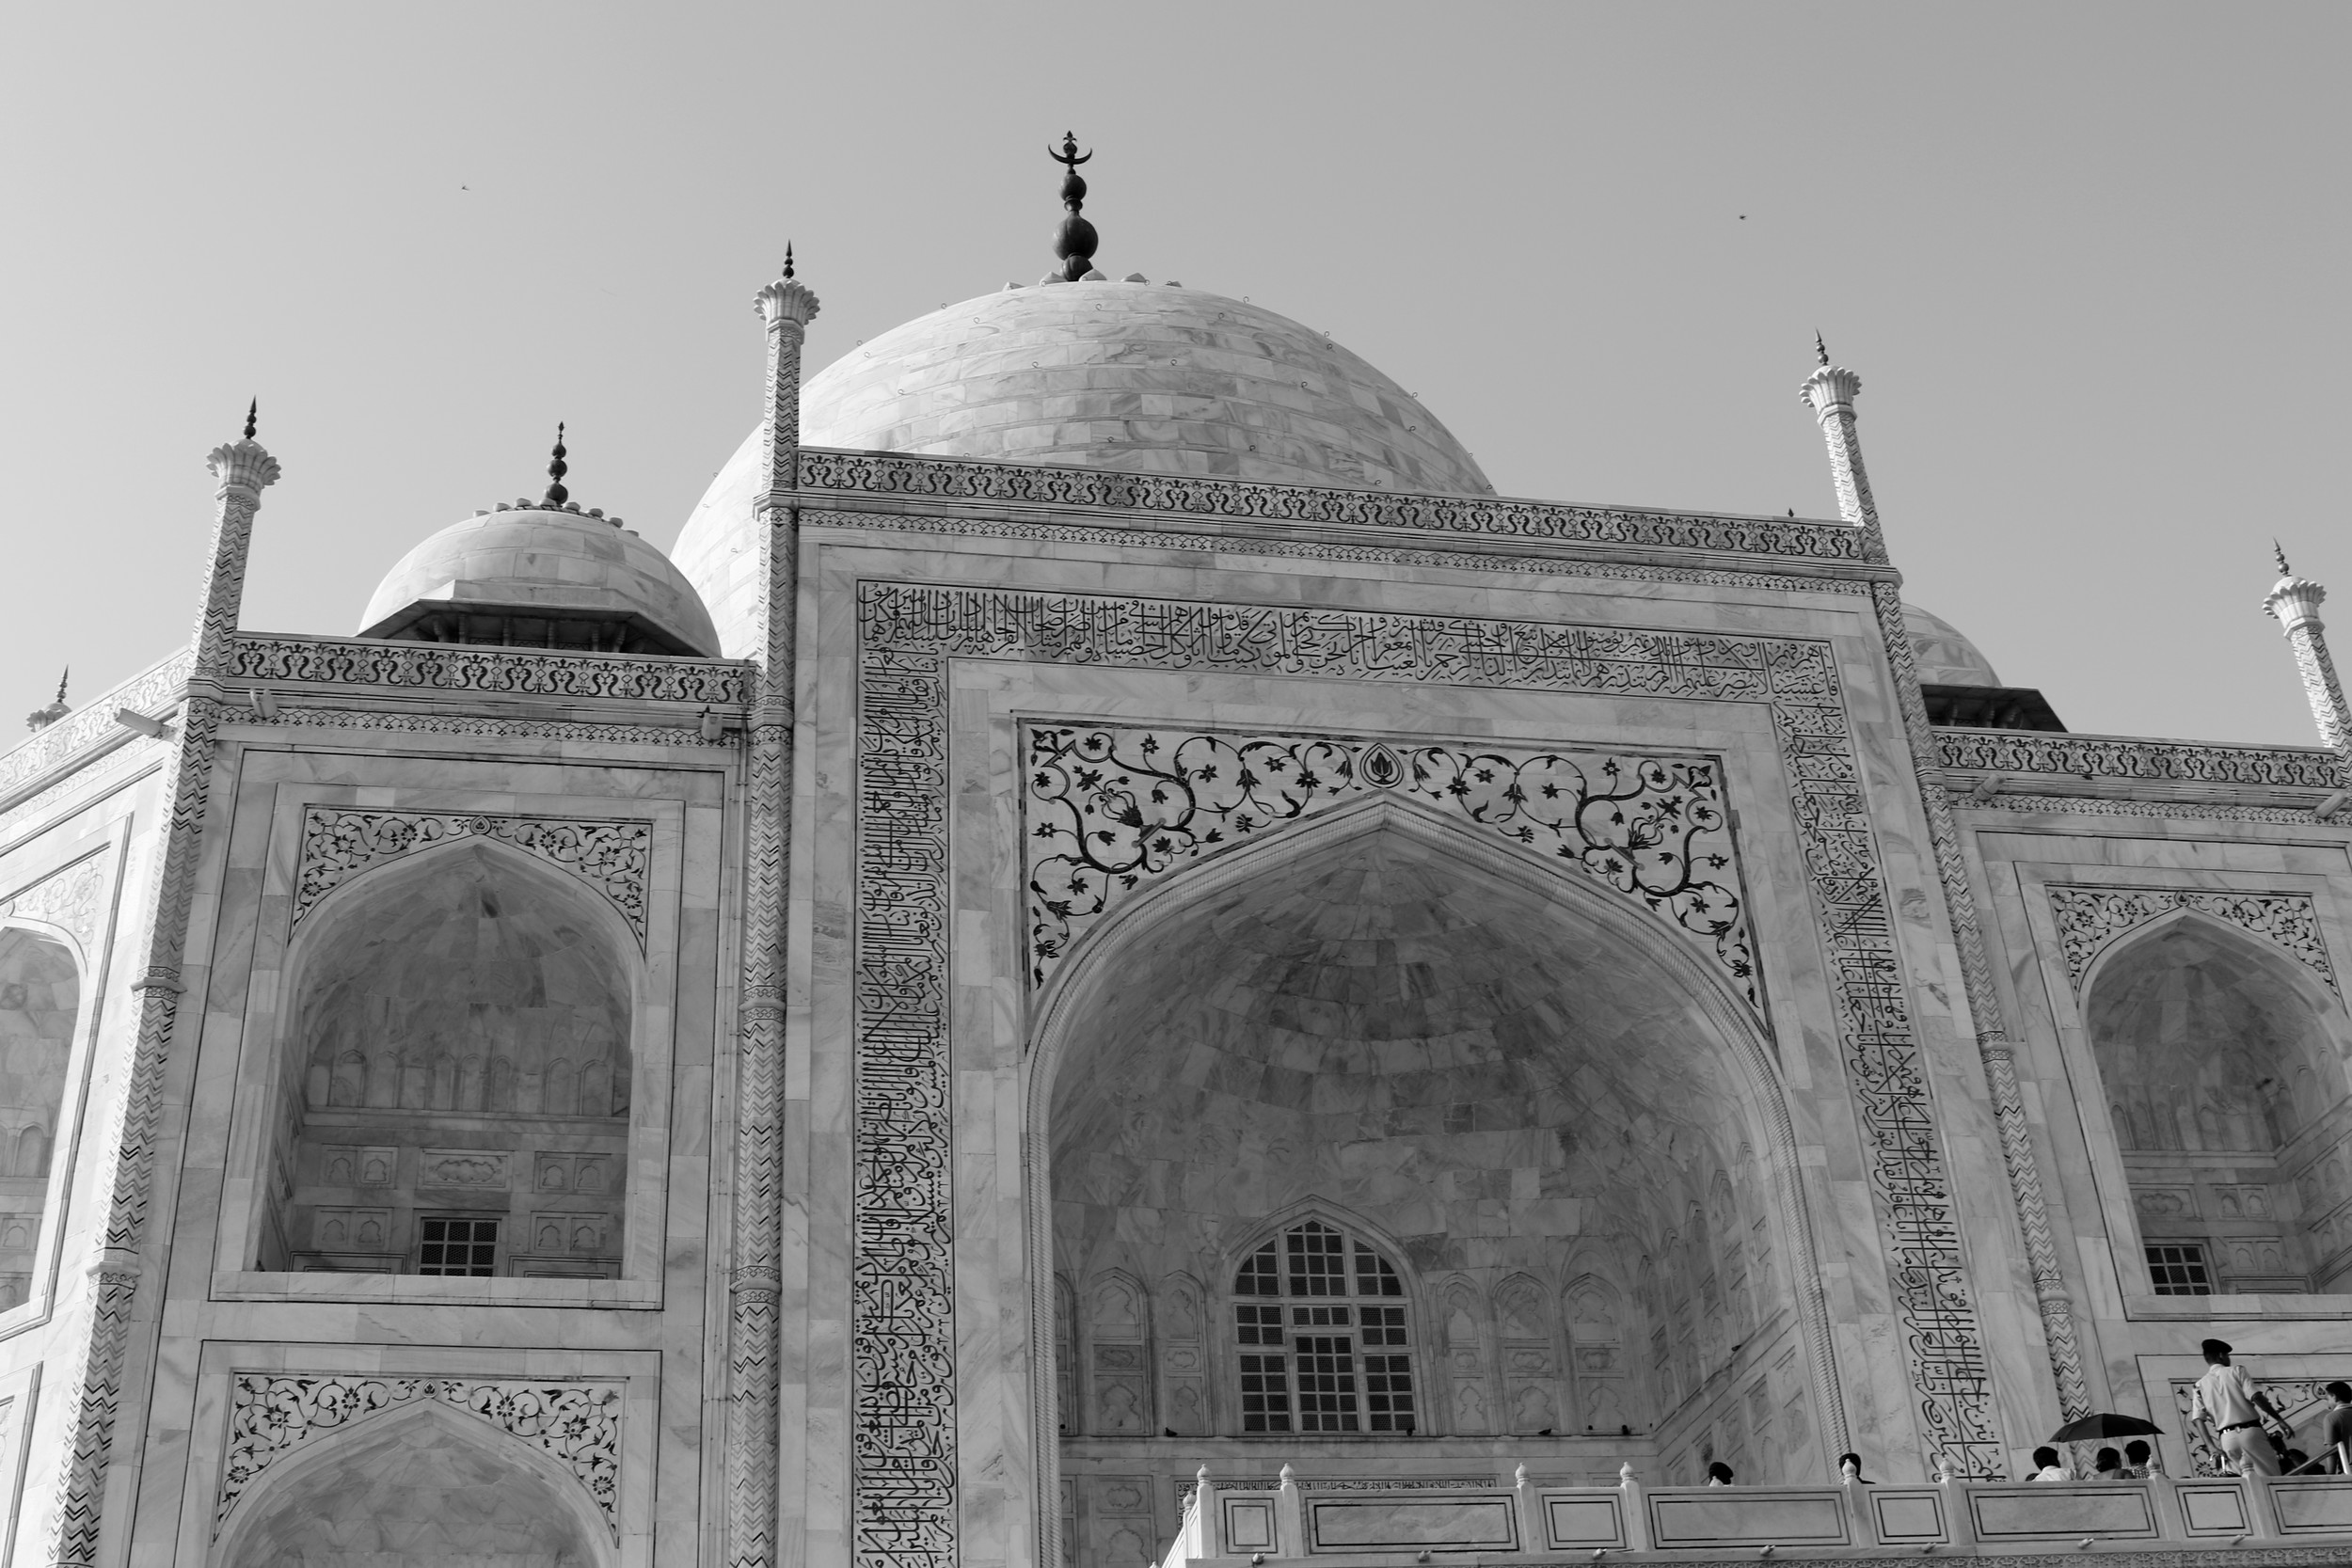 This photo of the Taj Mahal is the image for the Print Quality Competition's Black and White Division.